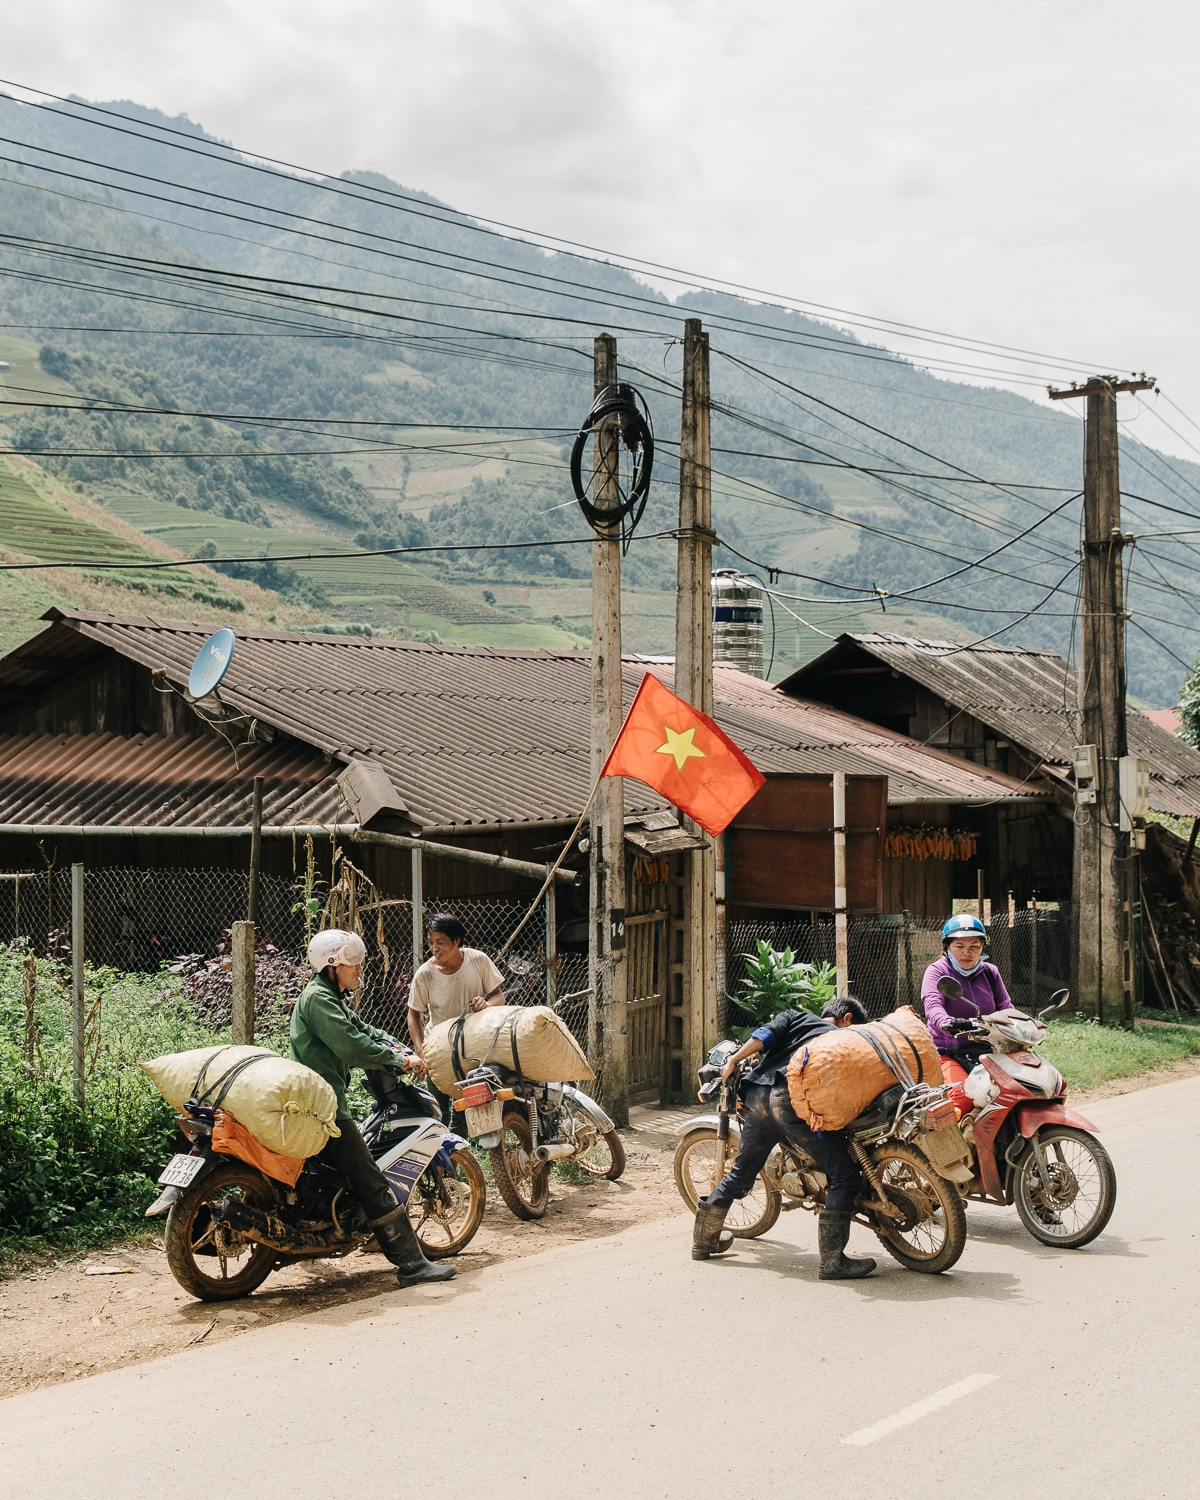 The road between Hanoi and Mu Cang Chai